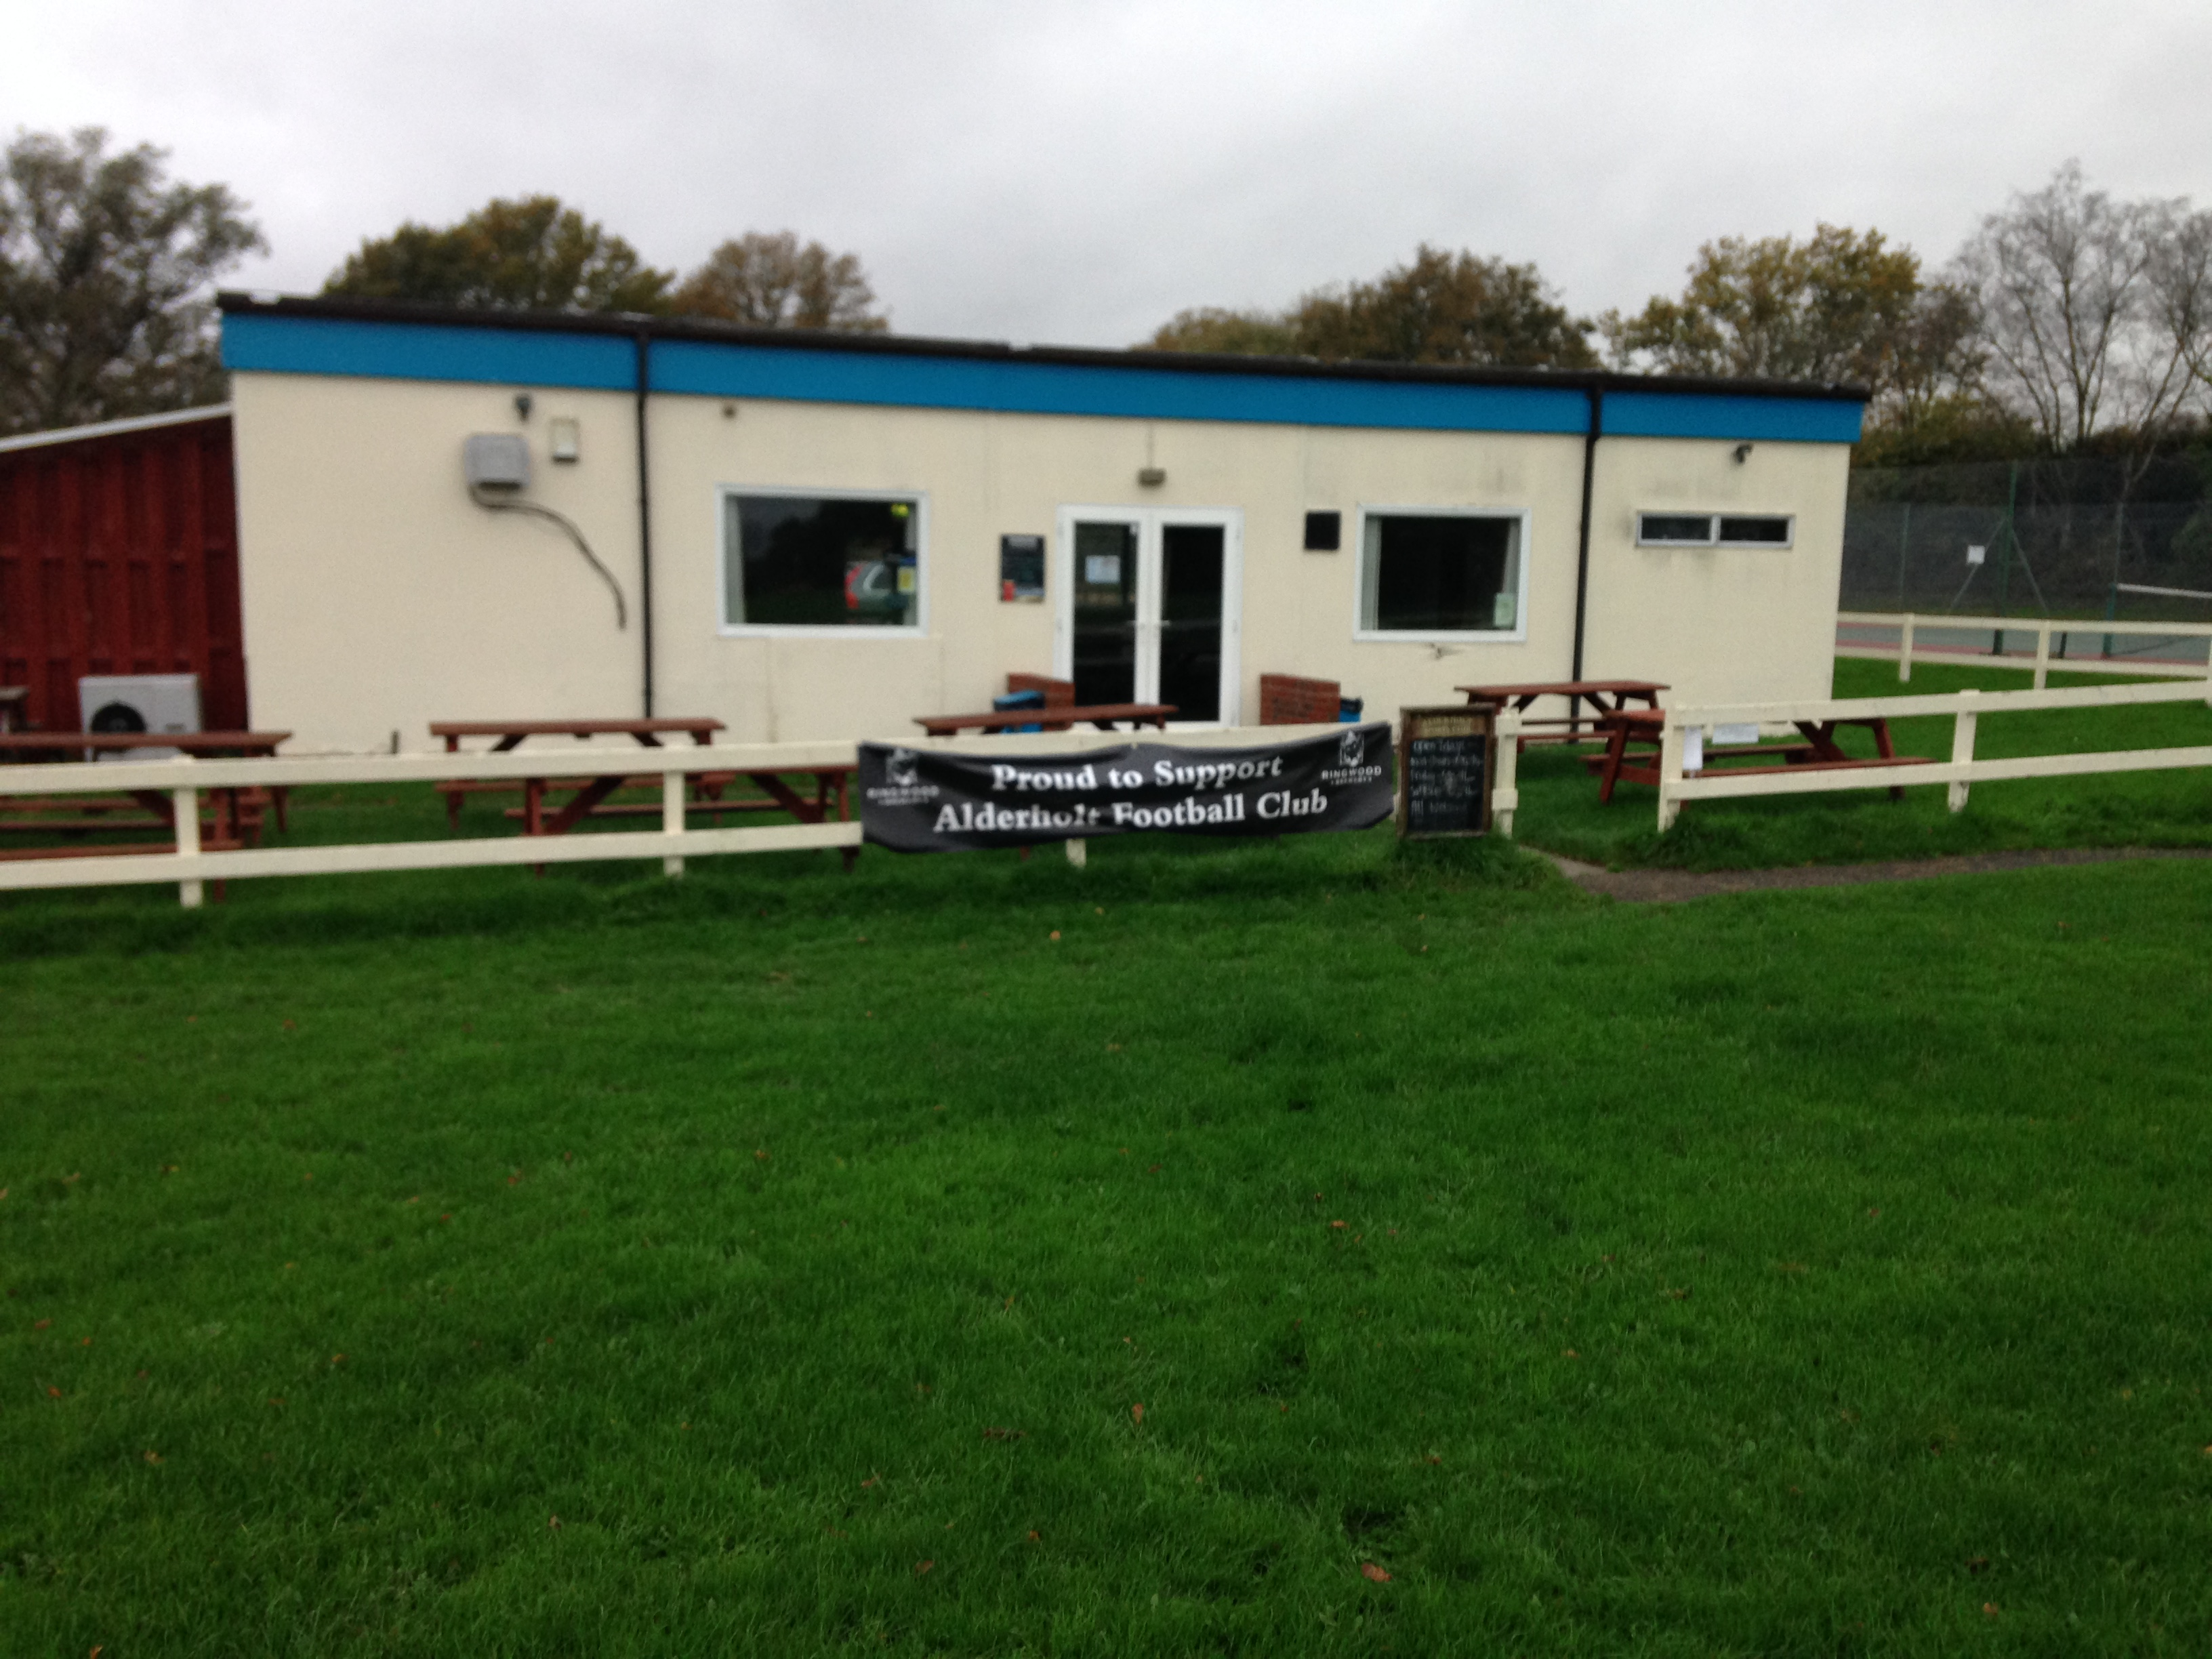 Crowdfunding to Refurbish Alderholt Sports & Social Club on